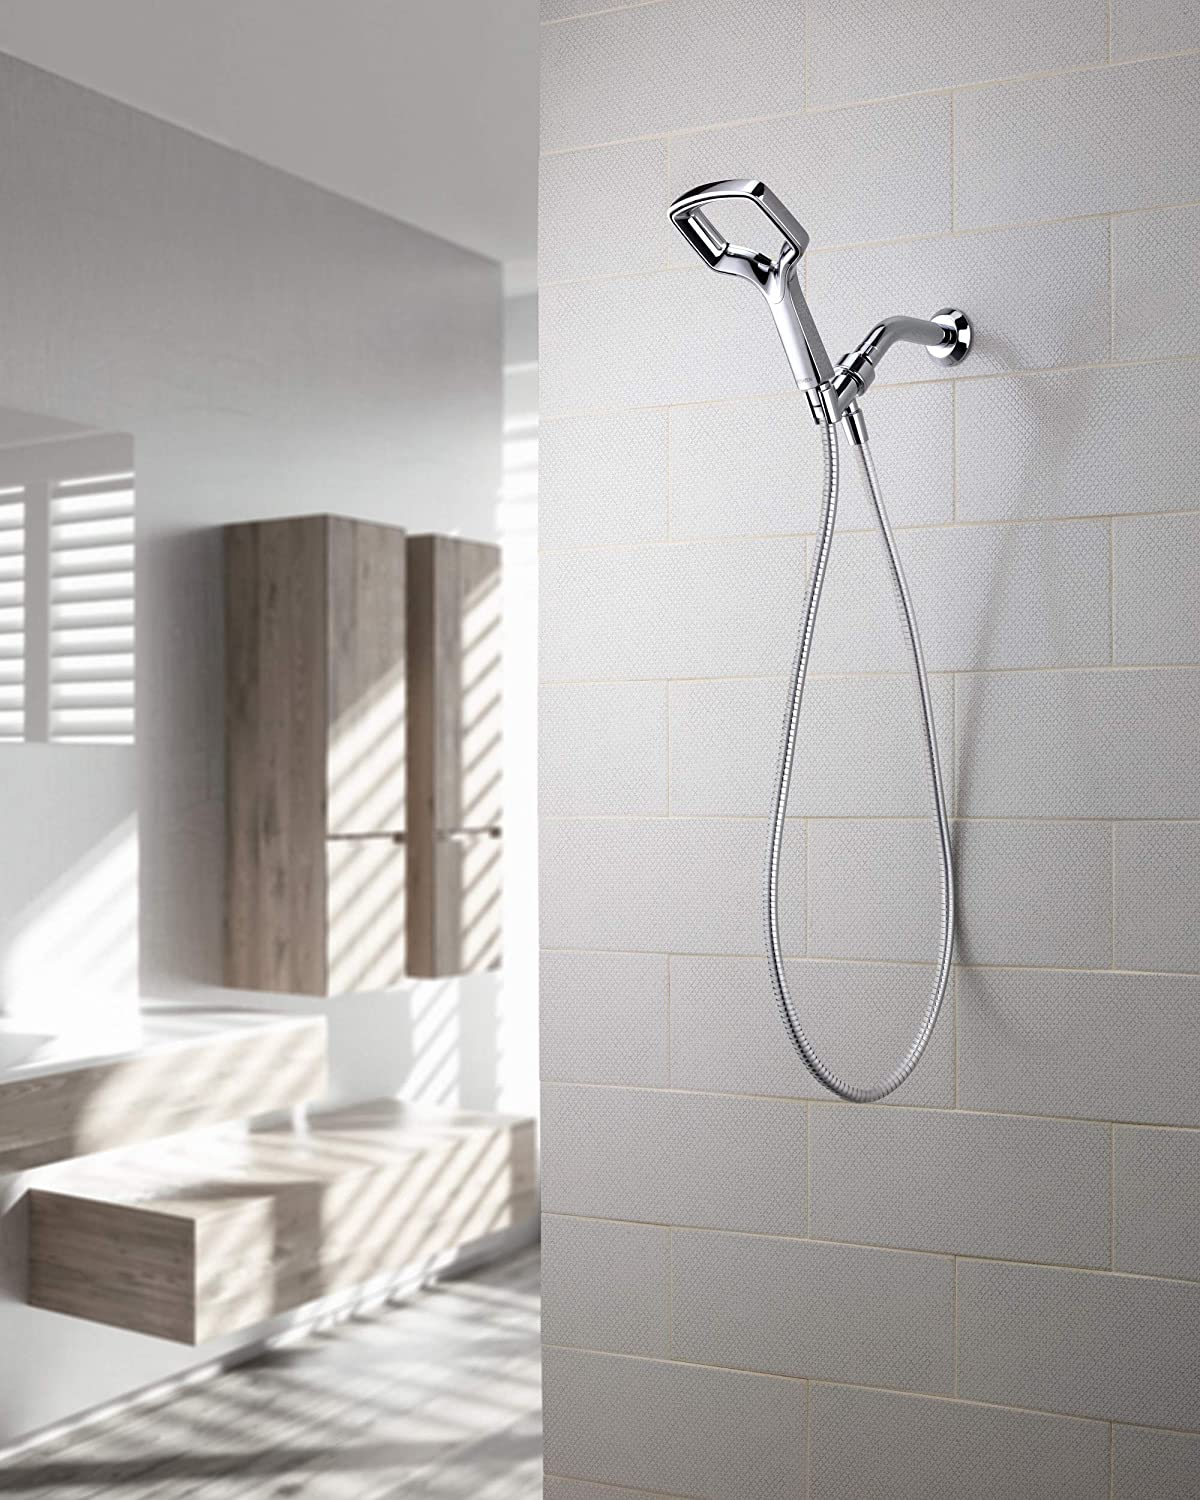 Methven Rua Shower Head